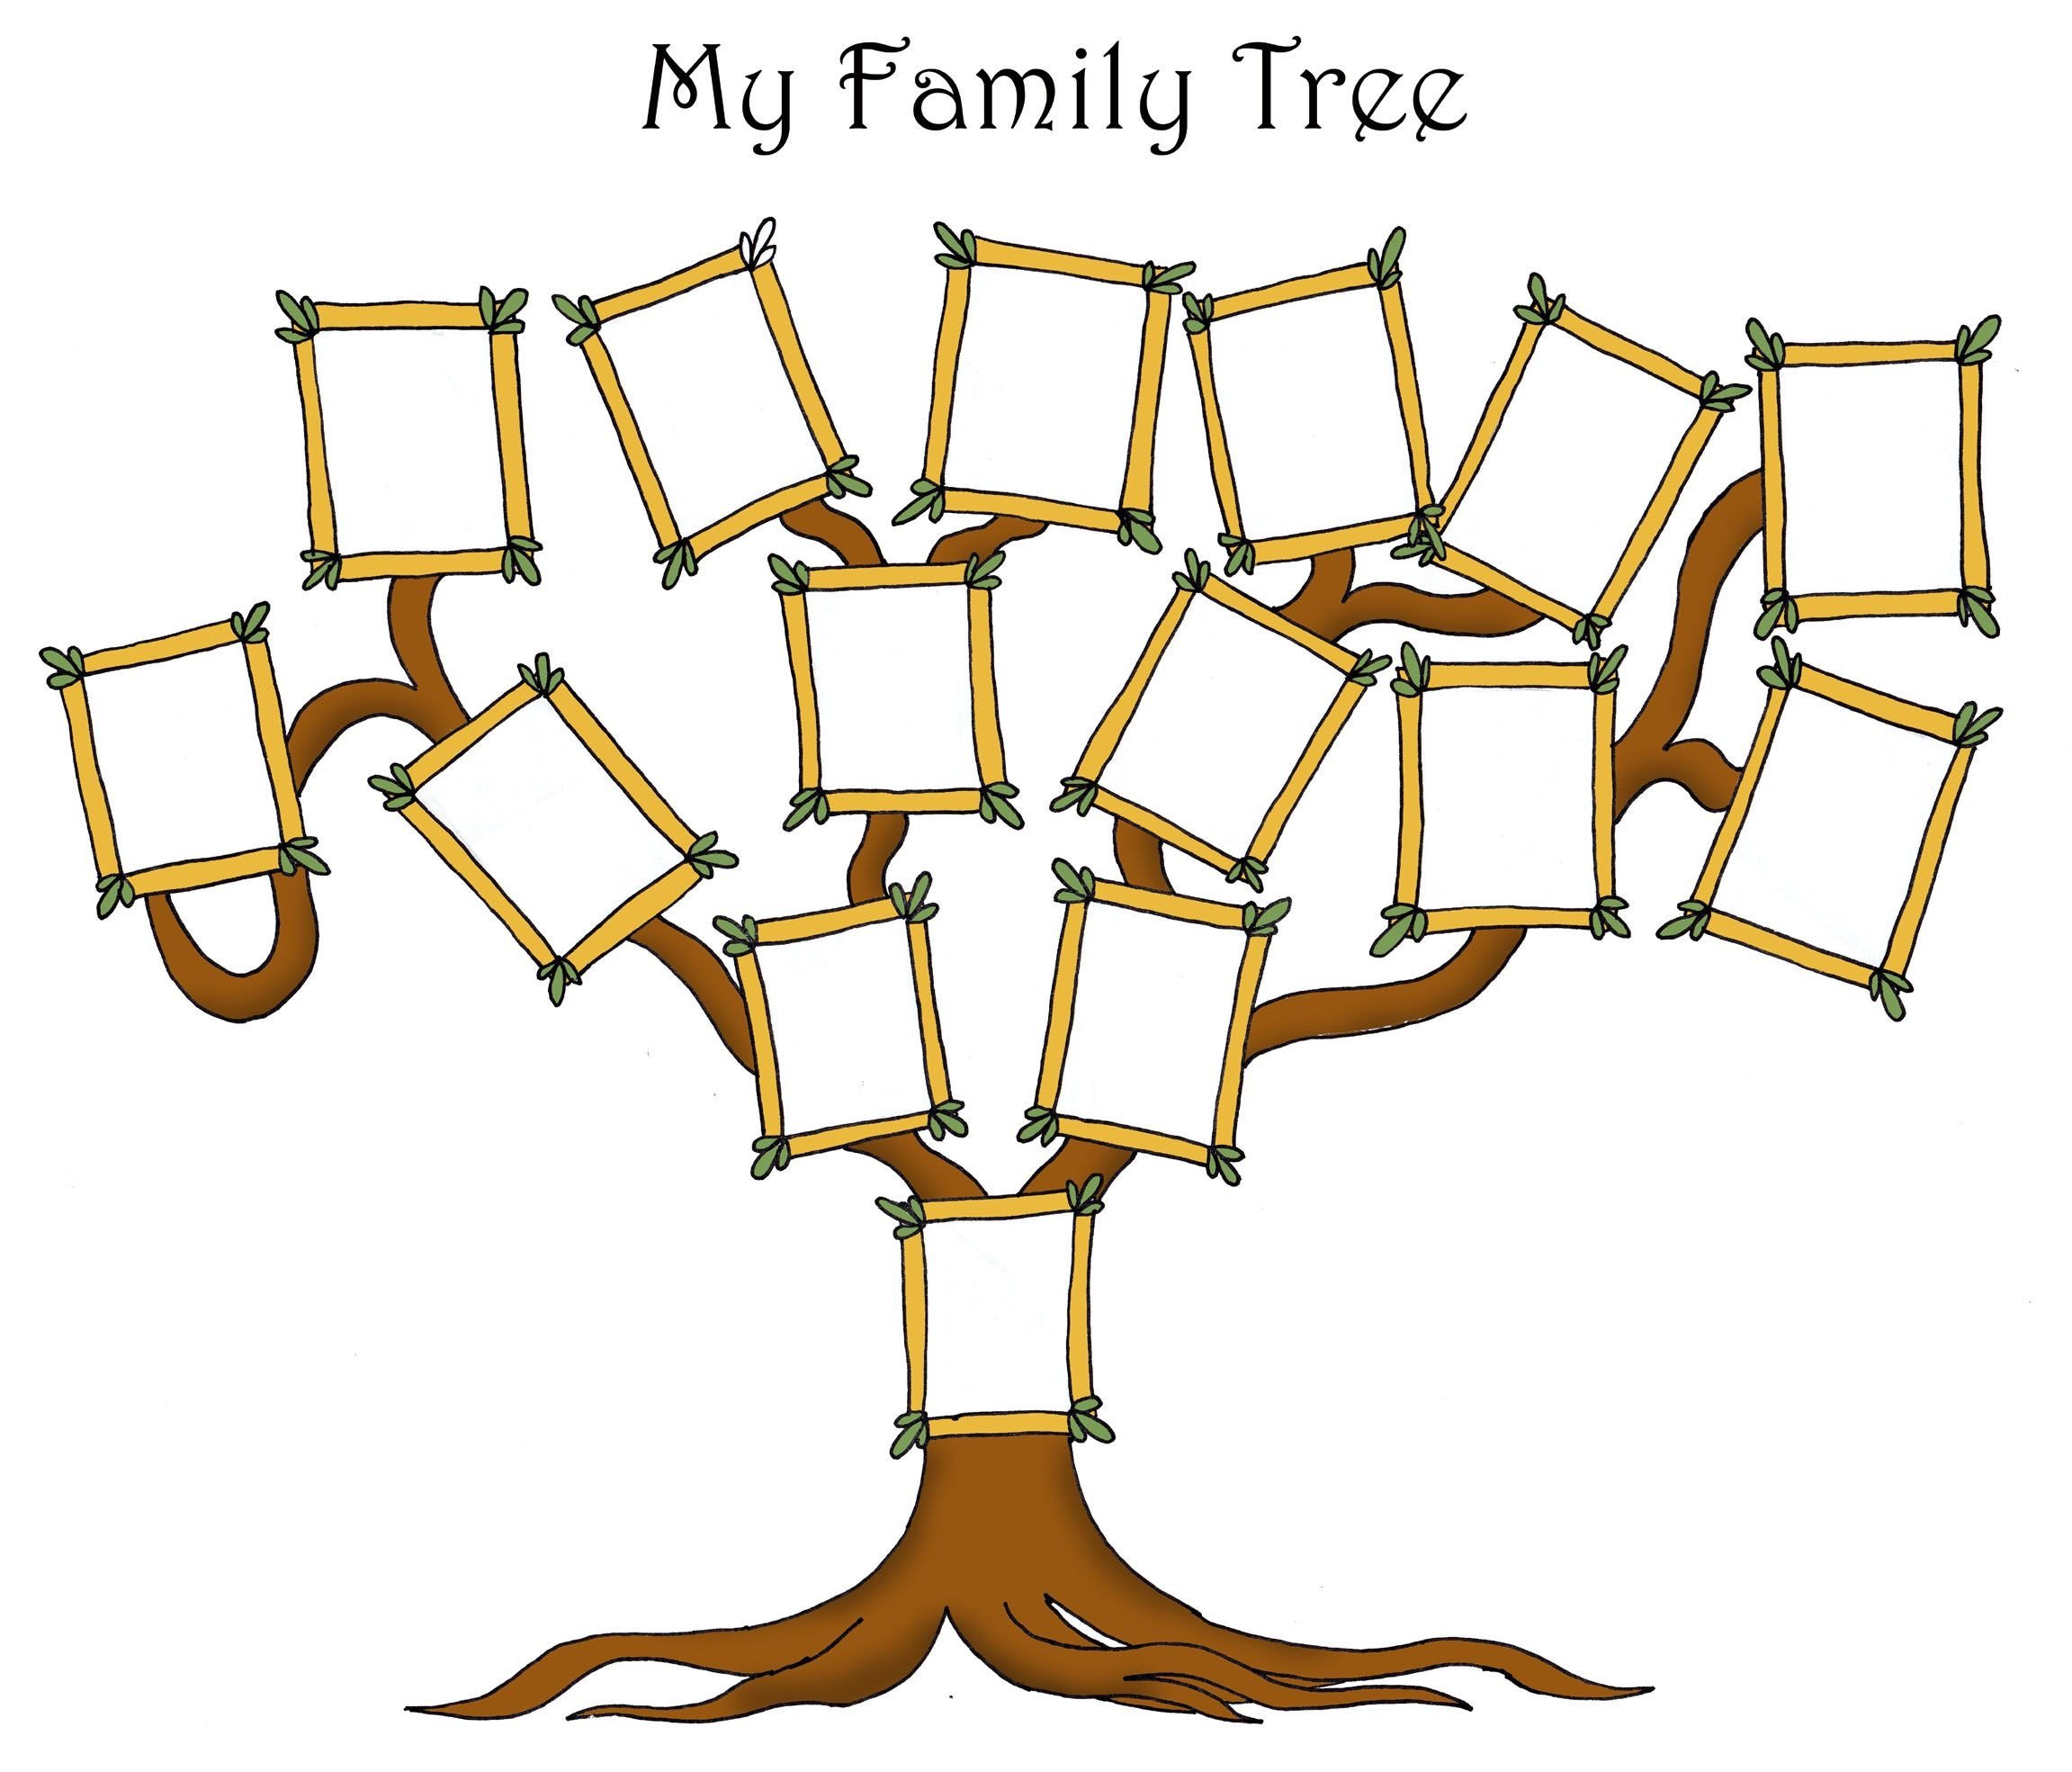 Family Tree with Pictures Template Free Editable Family Tree Template Daily Roabox